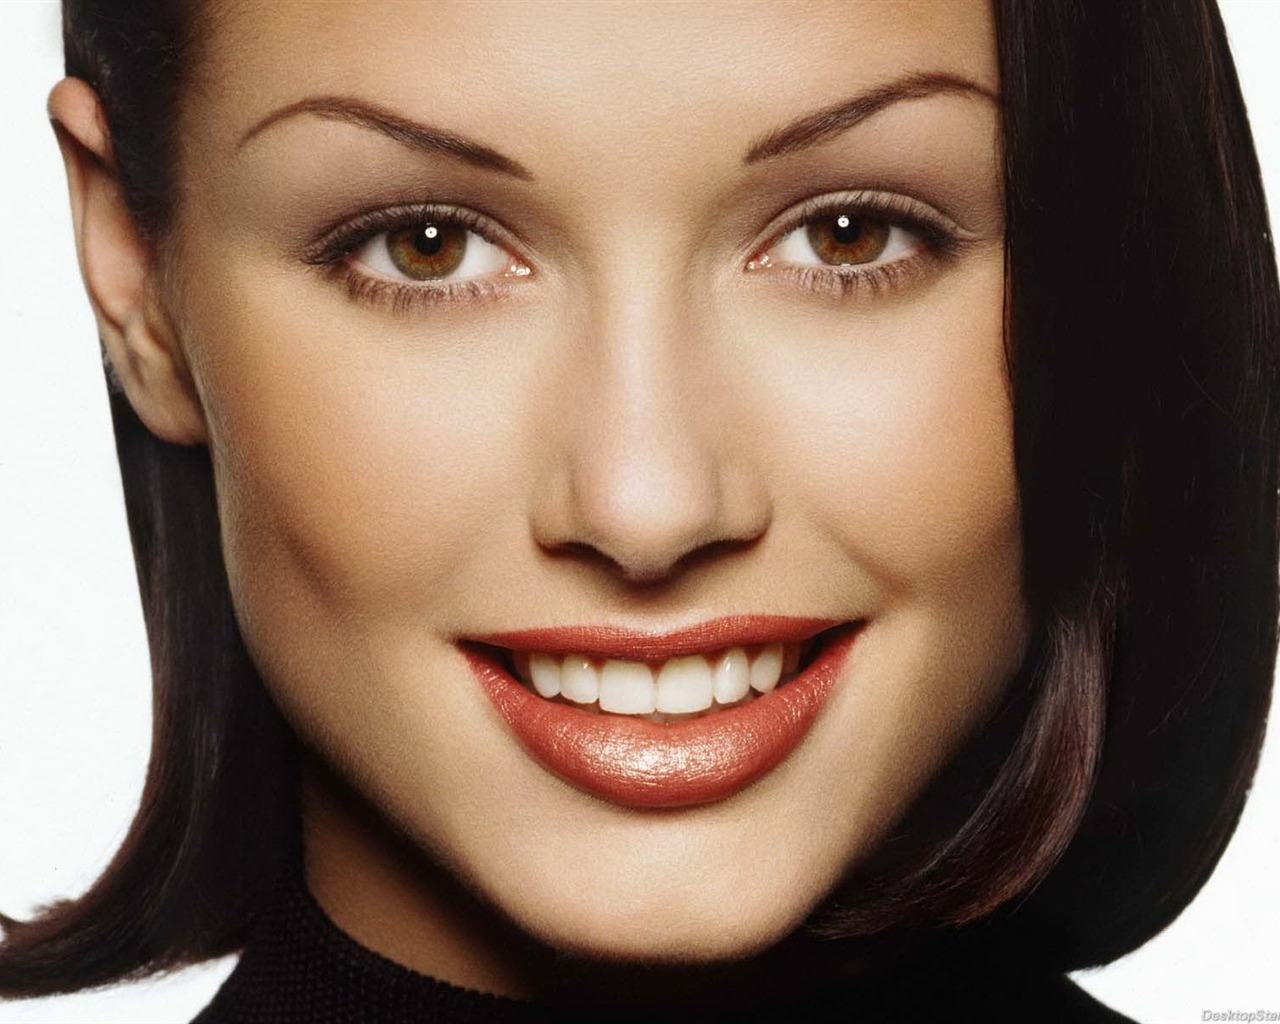 Bridget Moynahan #010 - 1280x1024 Wallpapers Pictures Photos Images